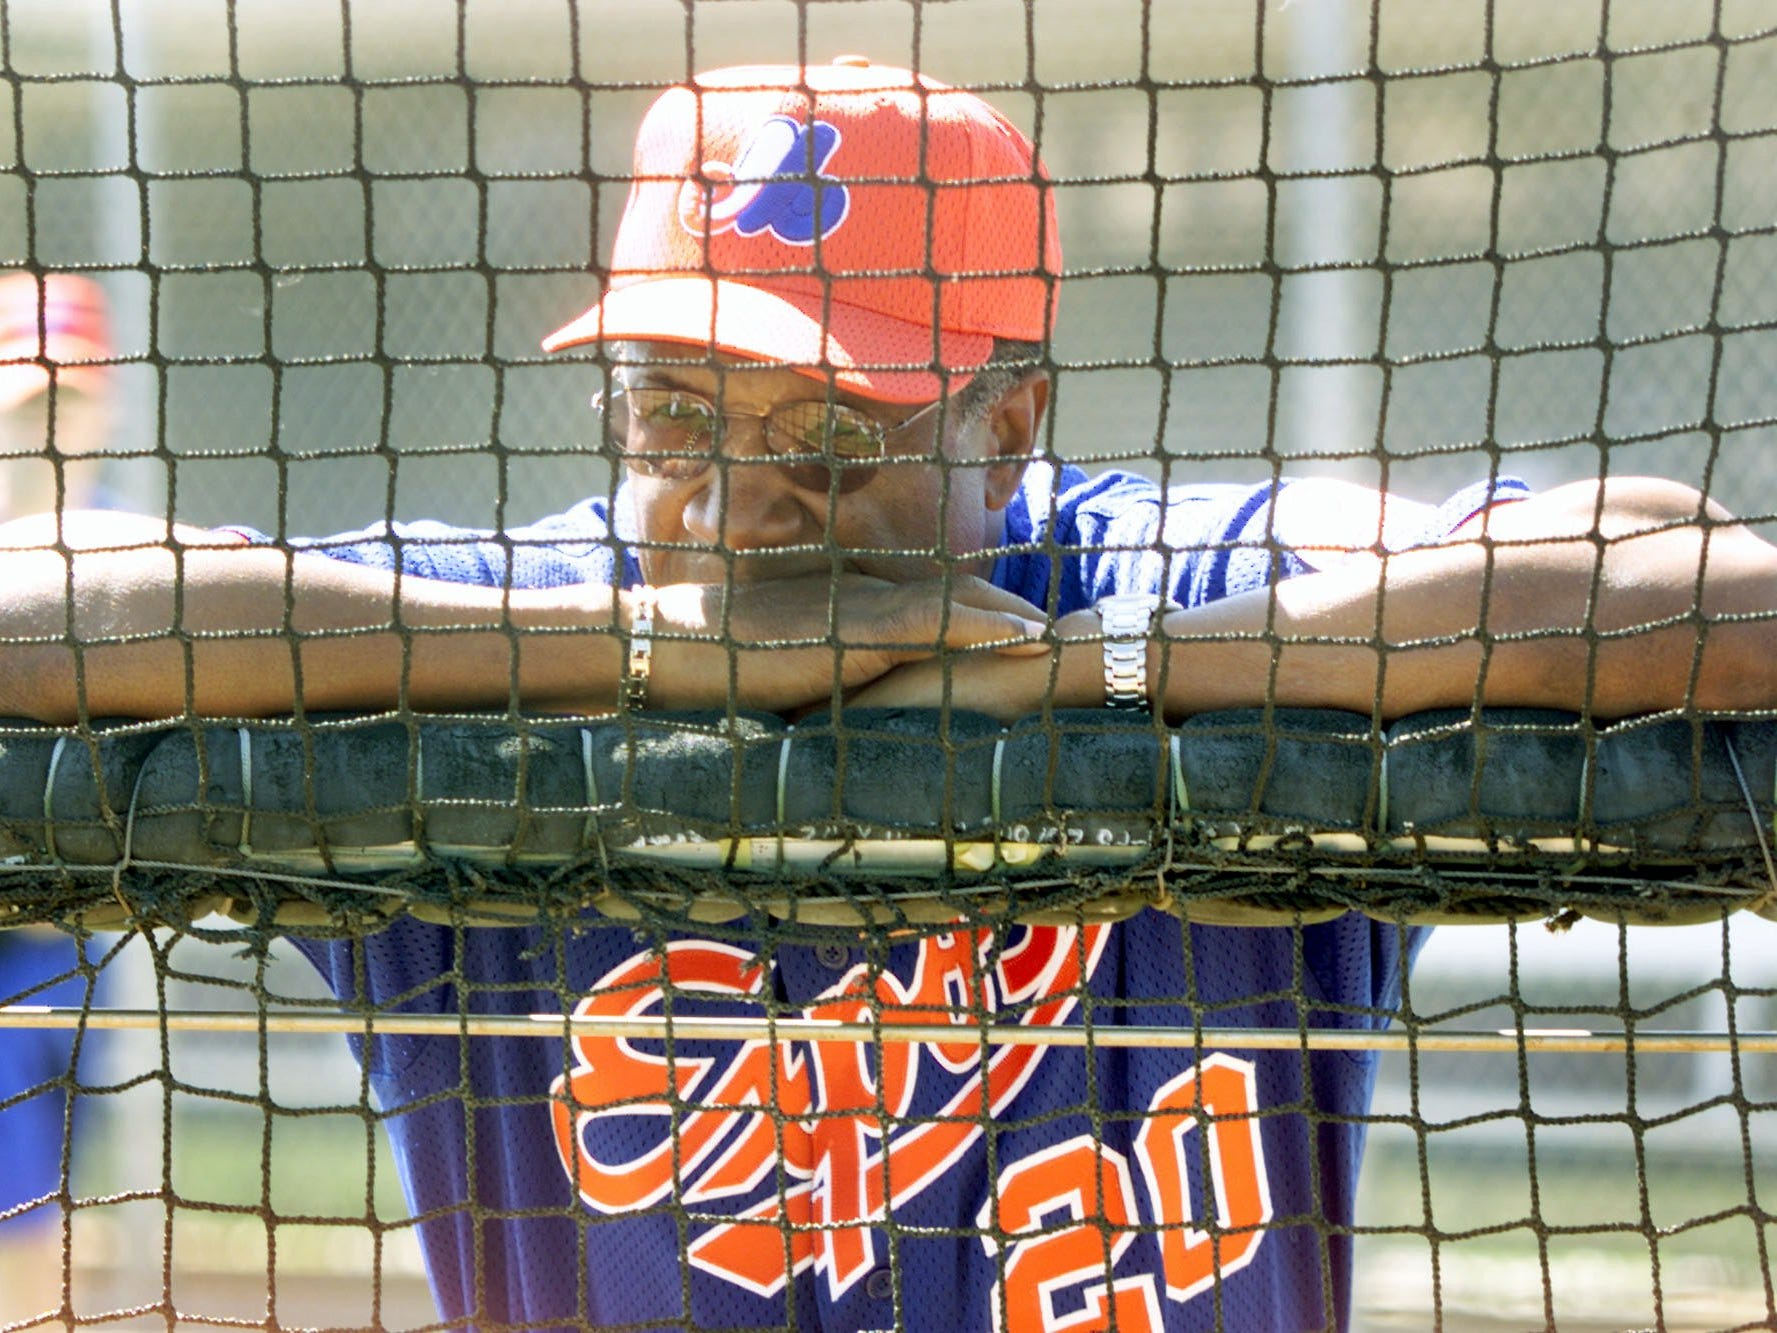 Montreal Expos manager Frank Robinson watches players batting practice during the first official day of training in 2002.